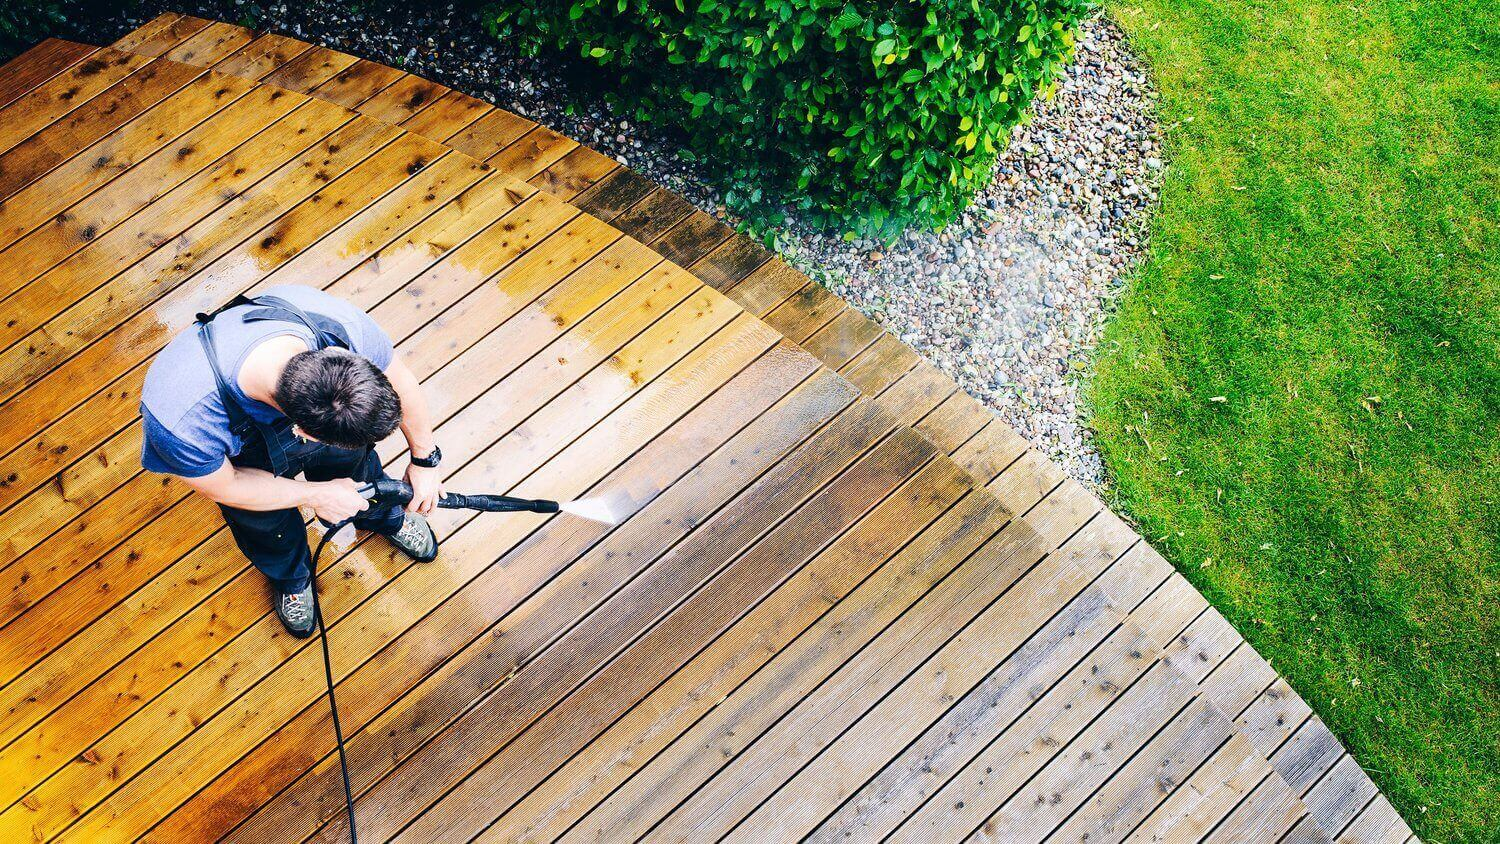 Power washing your decking areas making them cleaner, safer and ready for summer BBQ's. Decking pressure washed and oiled in North Leeds LS17.